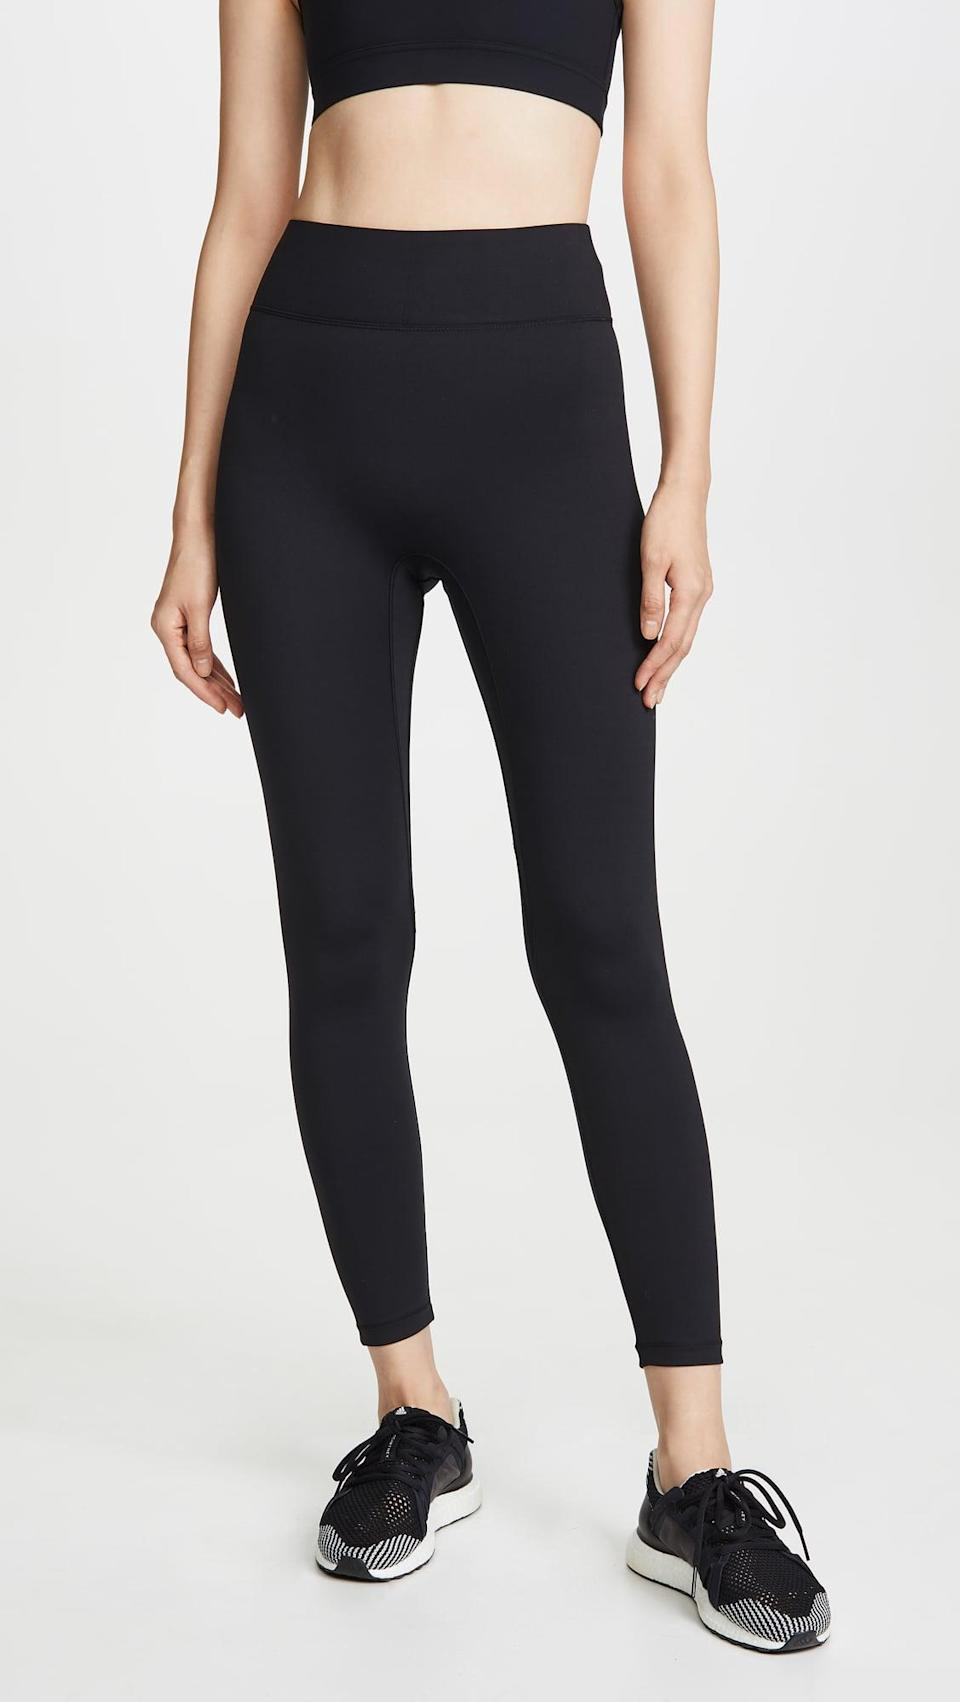 """<p>""""For me, my ultimate pet peeve is leggings that aren't versatile. I like to do lots of different workouts, and I want to know that if I reach into my drawer and pull out a pair, they'll hold up in Pilates or Spin class. That's why I'm obsessed with the <span>All Access Center Stage Leggings</span> ($98).</p> <p>Here's why I love these leggings so much: the fit is incredible, and they hold you in without feeling heavy or restrictive, as some other compression leggings tend to do. They're breathable, so great for sweaty activities, but not so light that they're out of the question in the winter. They're high waisted but don't come up to your rib cage. The waistband is thick but comfortable, so they don't budge no matter what you're doing. In short, these leggings are perfect, and they're worth every penny because I wear them so often."""" - IY</p> <p>Read the full <a href=""""https://www.popsugar.com/fitness/all-access-center-stage-leggings-review-47114367"""" class=""""link rapid-noclick-resp"""" rel=""""nofollow noopener"""" target=""""_blank"""" data-ylk=""""slk:All Access Center Stage Leggings review"""">All Access Center Stage Leggings review</a>.</p>"""